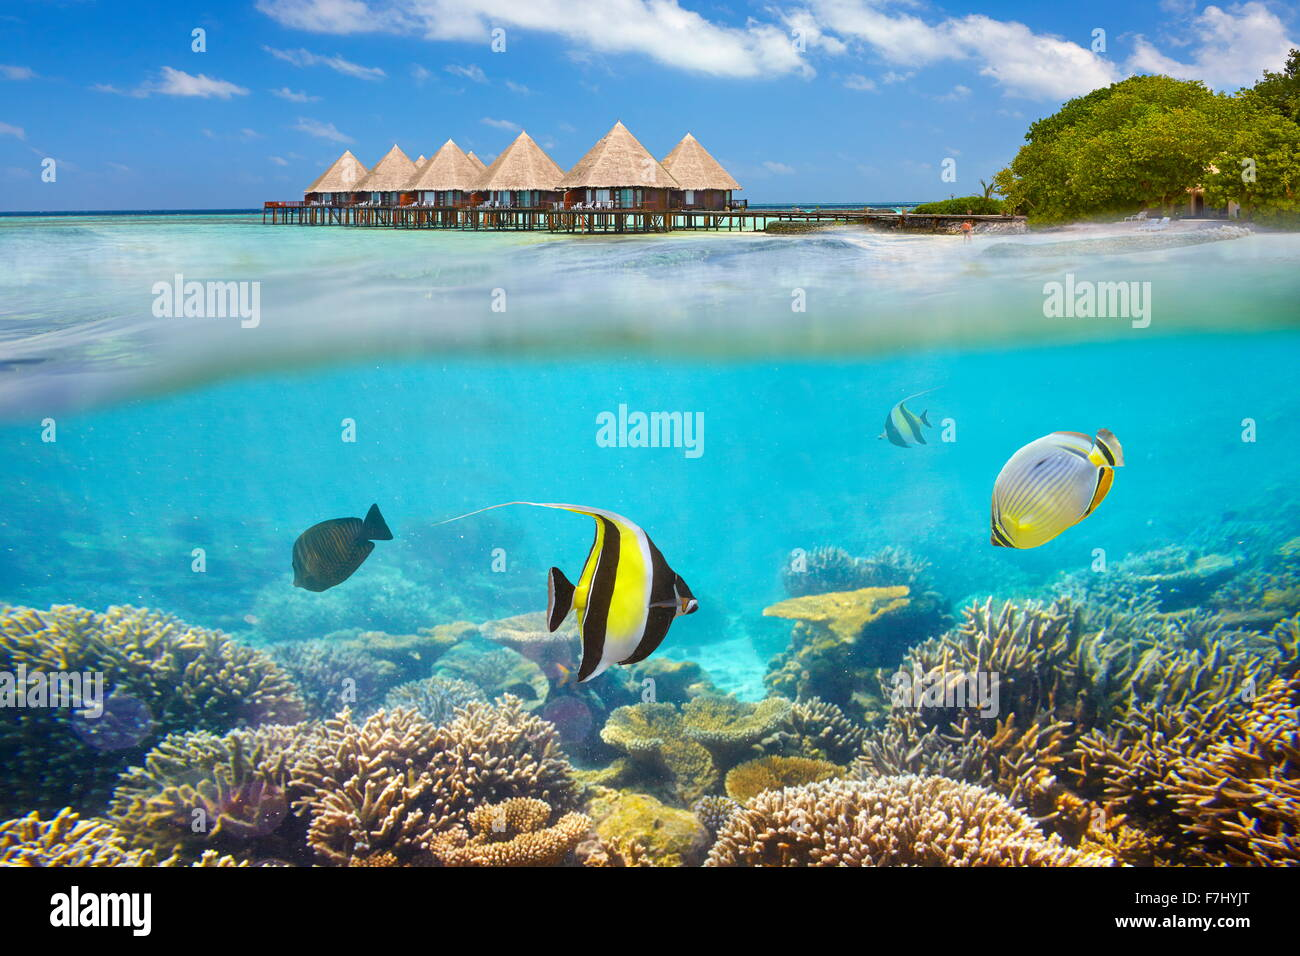 Maldives Island - underwater view with fish - Stock Image